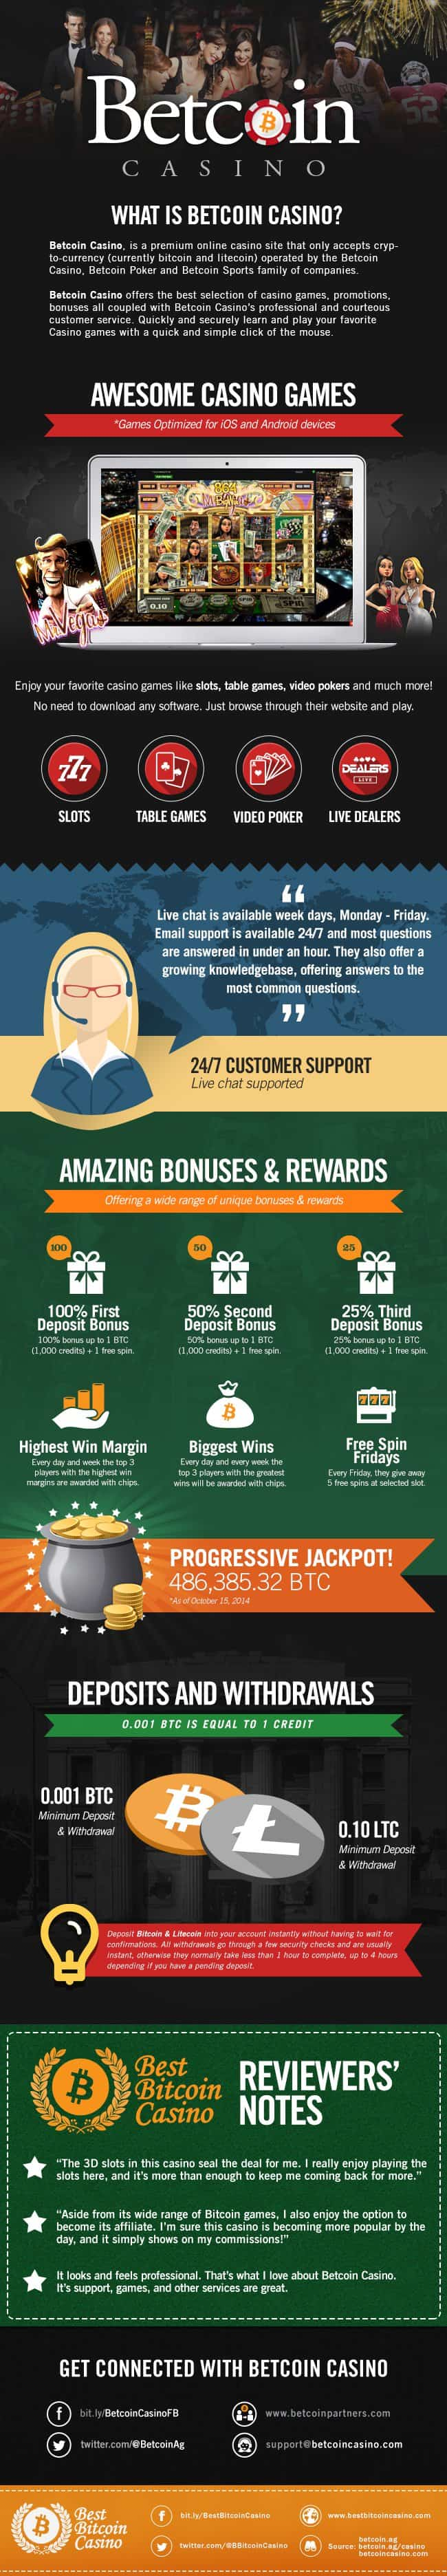 Betcoin Infographic